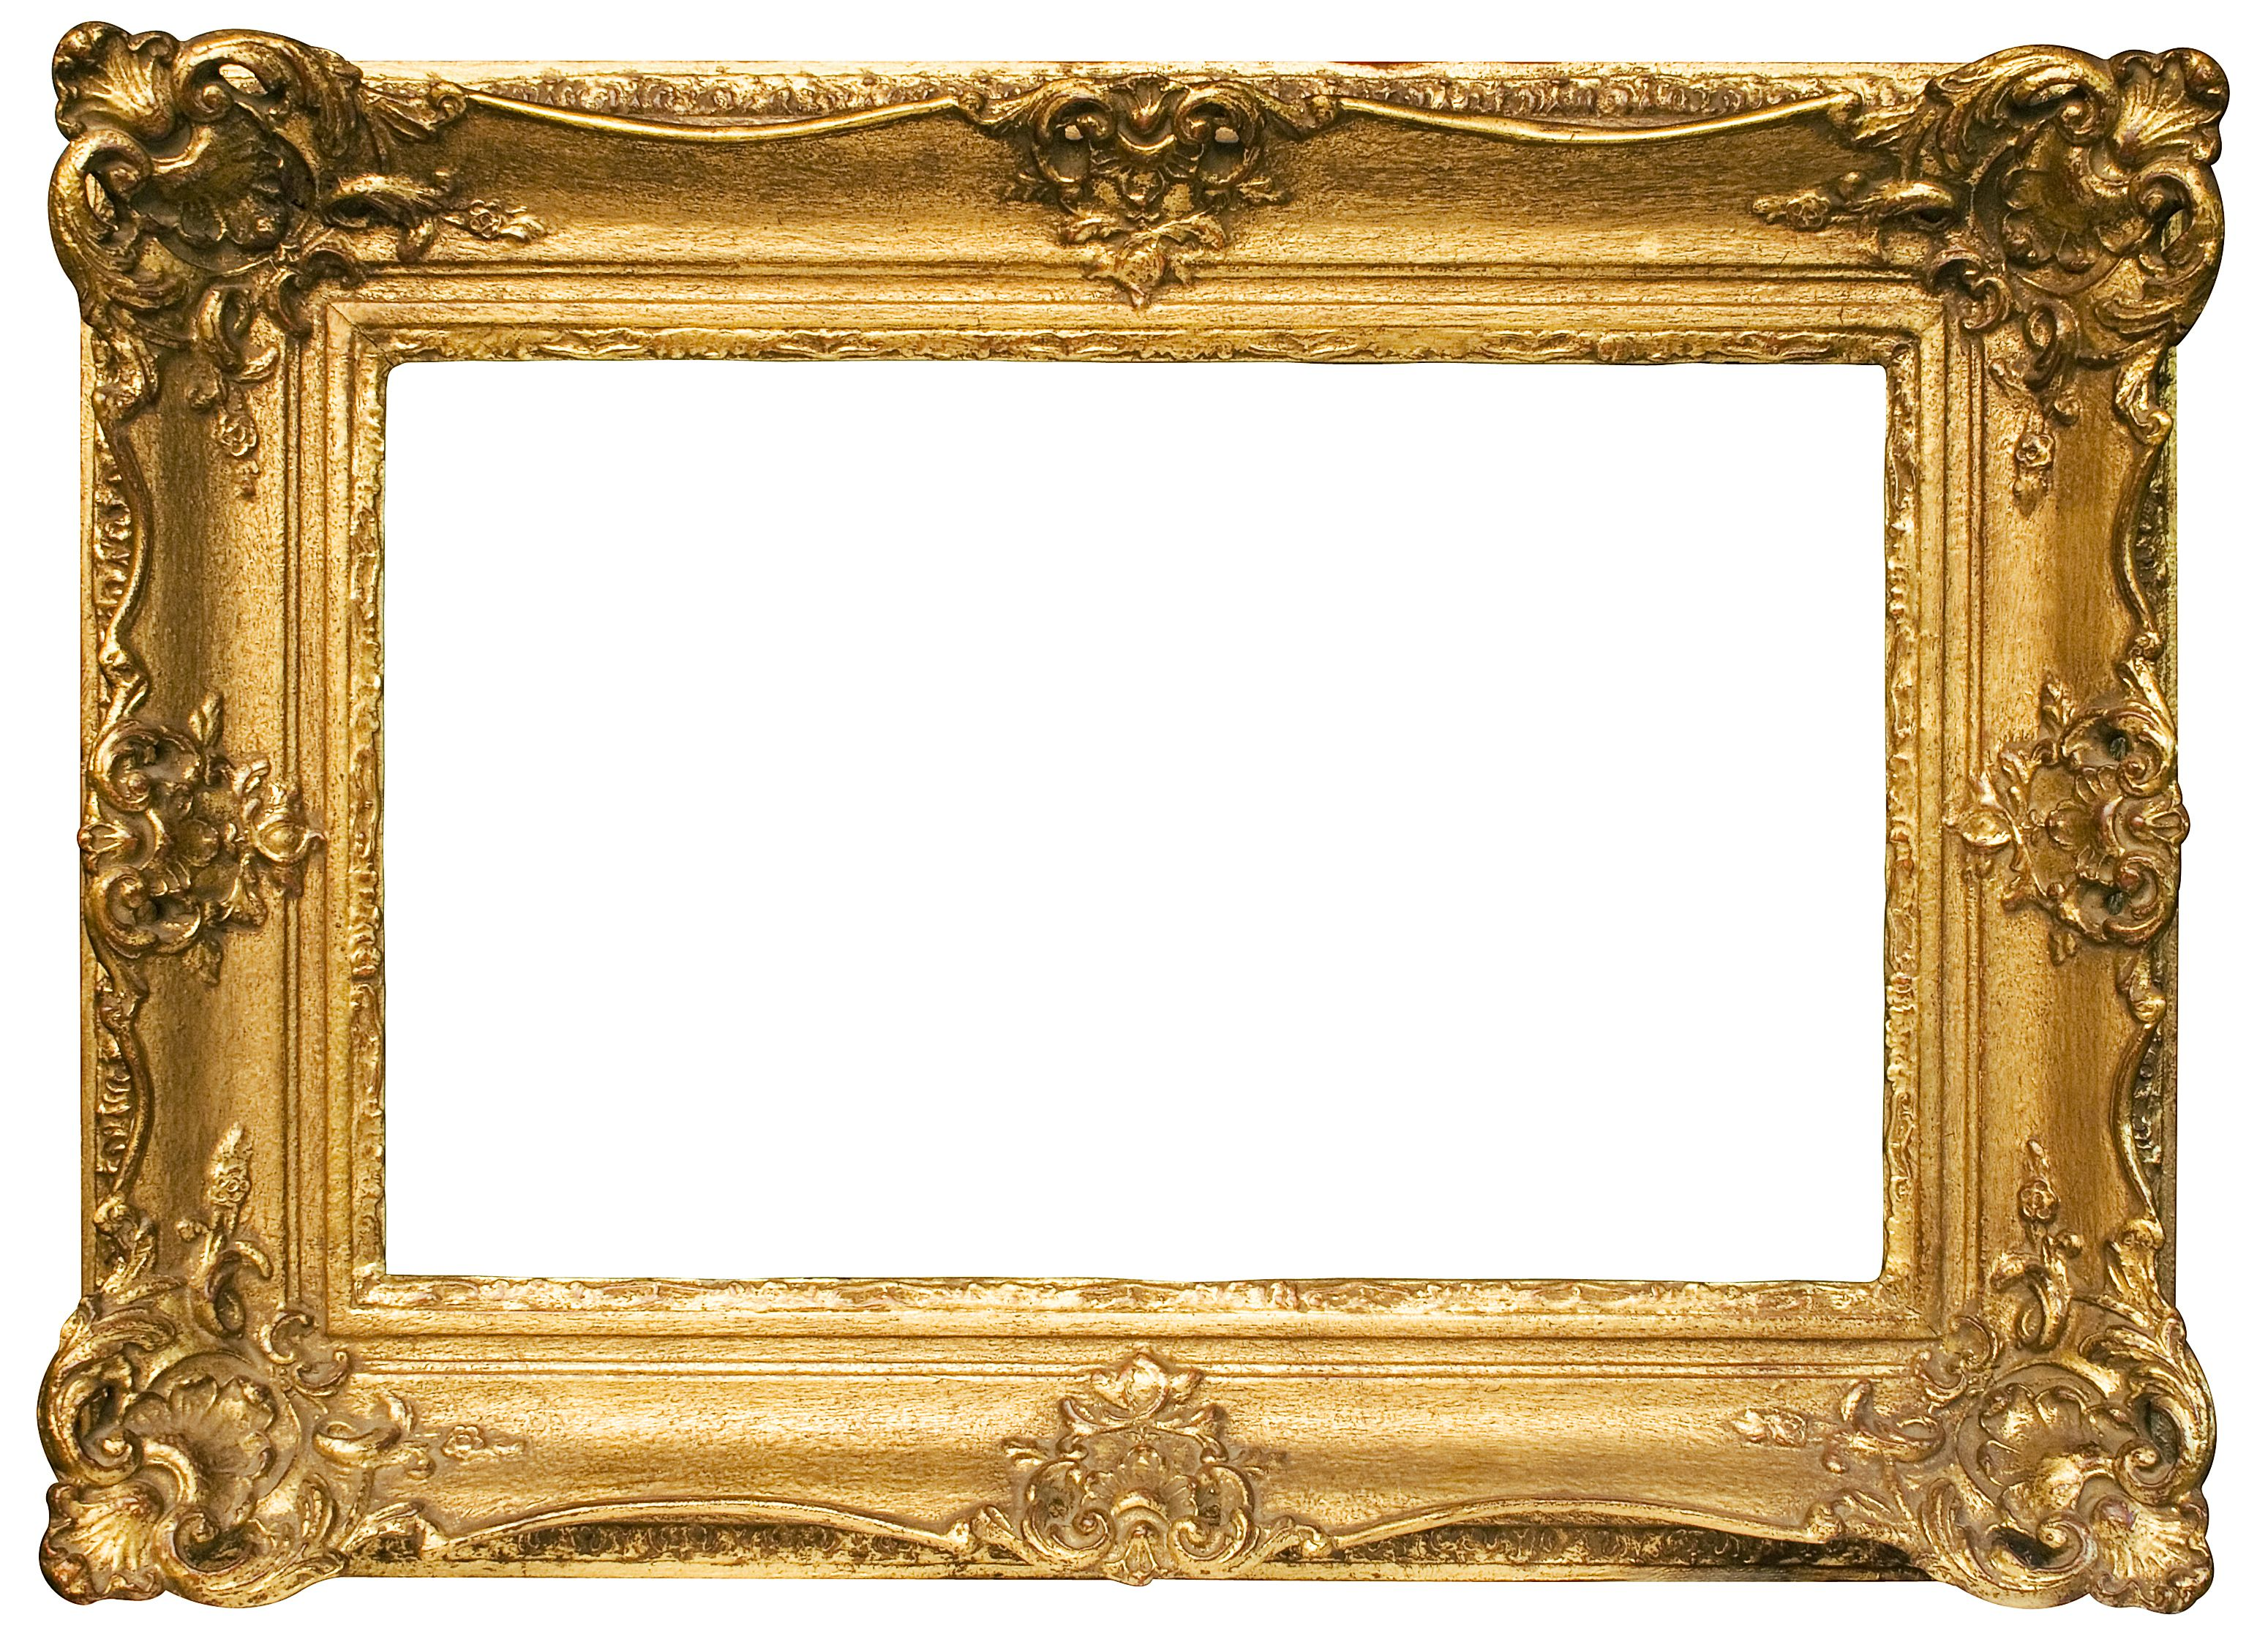 Transparent Png Background Frame Gold 28917 Free Icons And Png